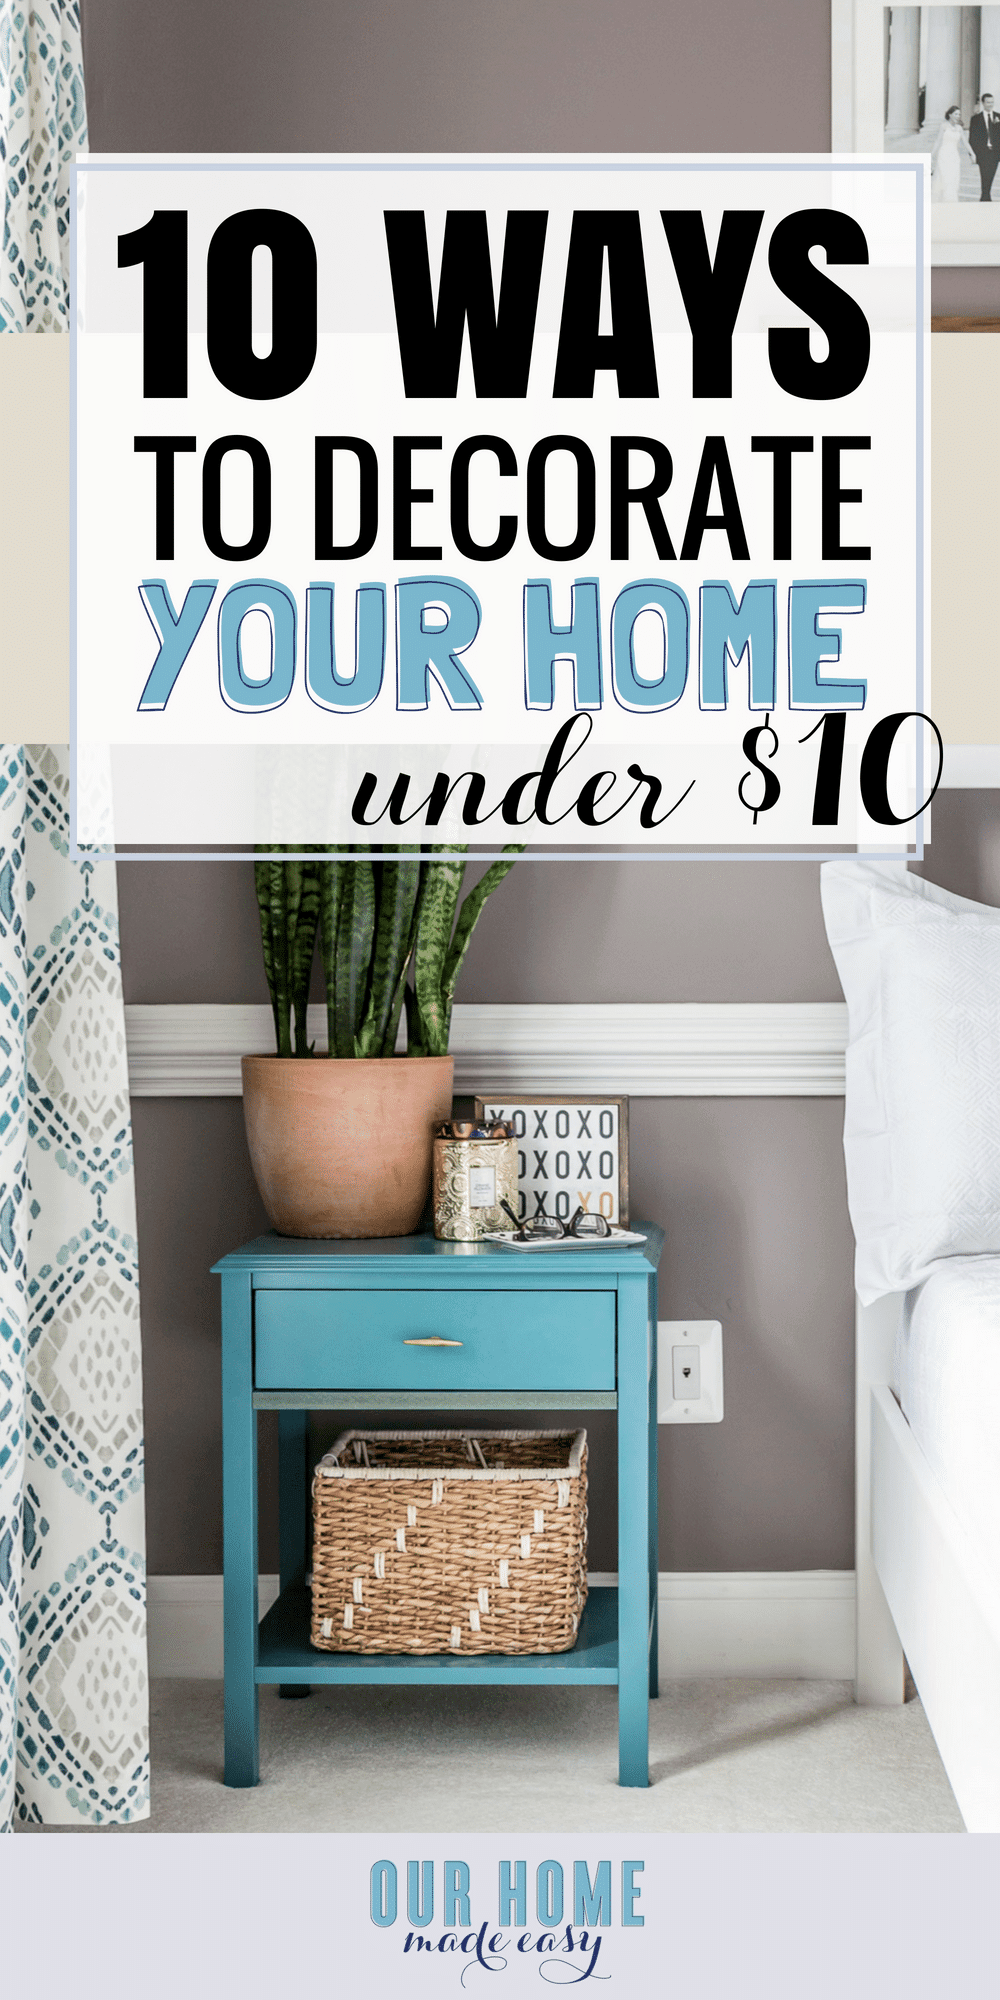 Check out these easy ways to decorate your home! All are under $10! Refresh your home with these tips & tricks! #home #decor #decorating